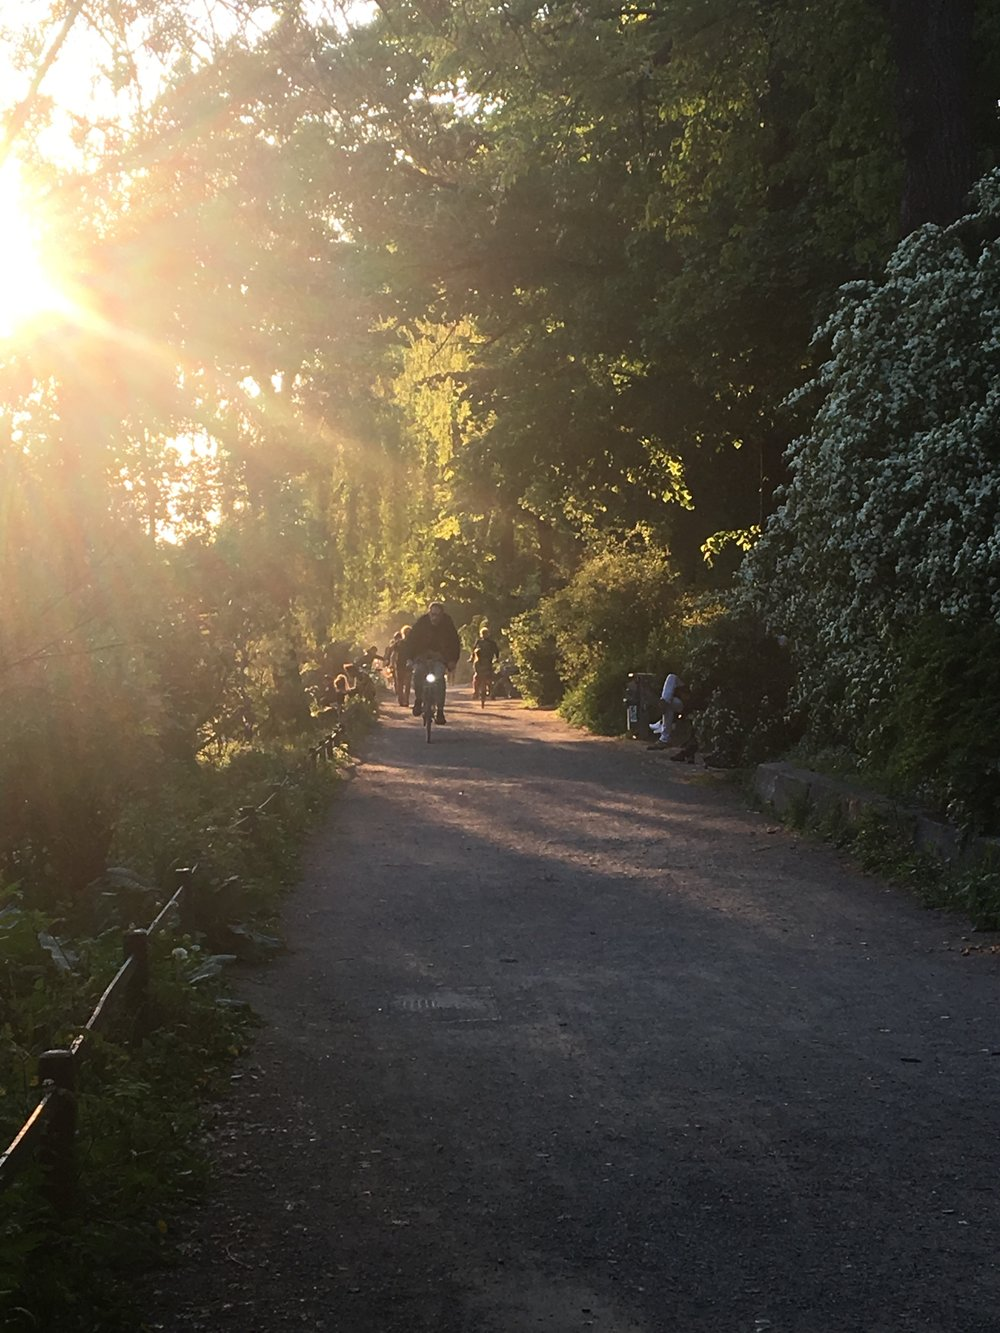 Path by the Landwehrkanal at sunset, May 2017